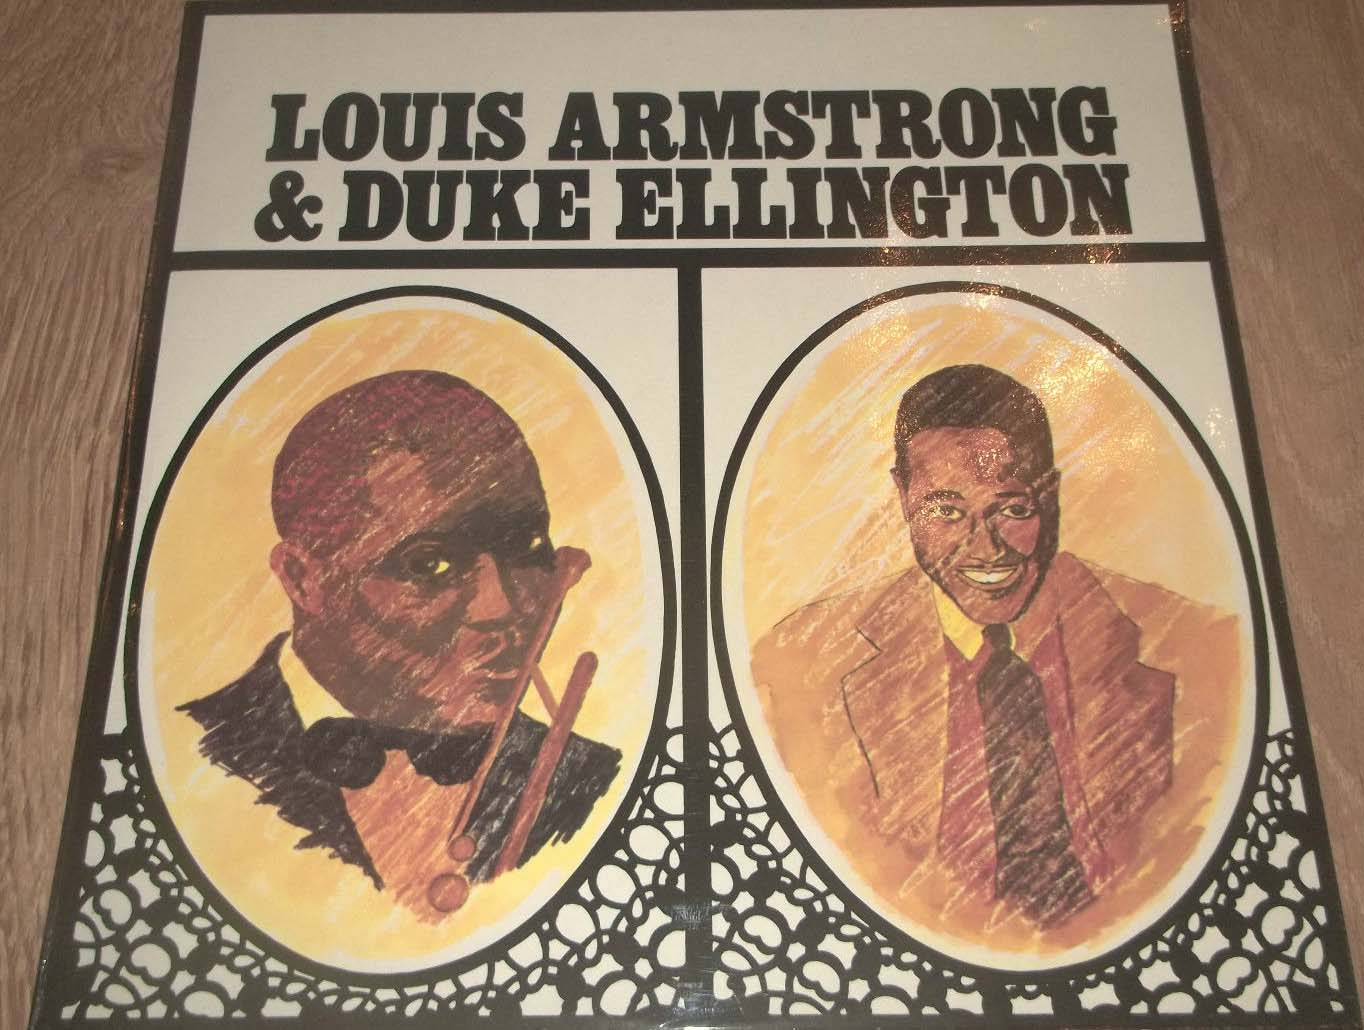 LOUIS ARMSTRONG & DUKE ELLINGTON - LOUIS ARMSTRONG & DUKE ELLINGTON